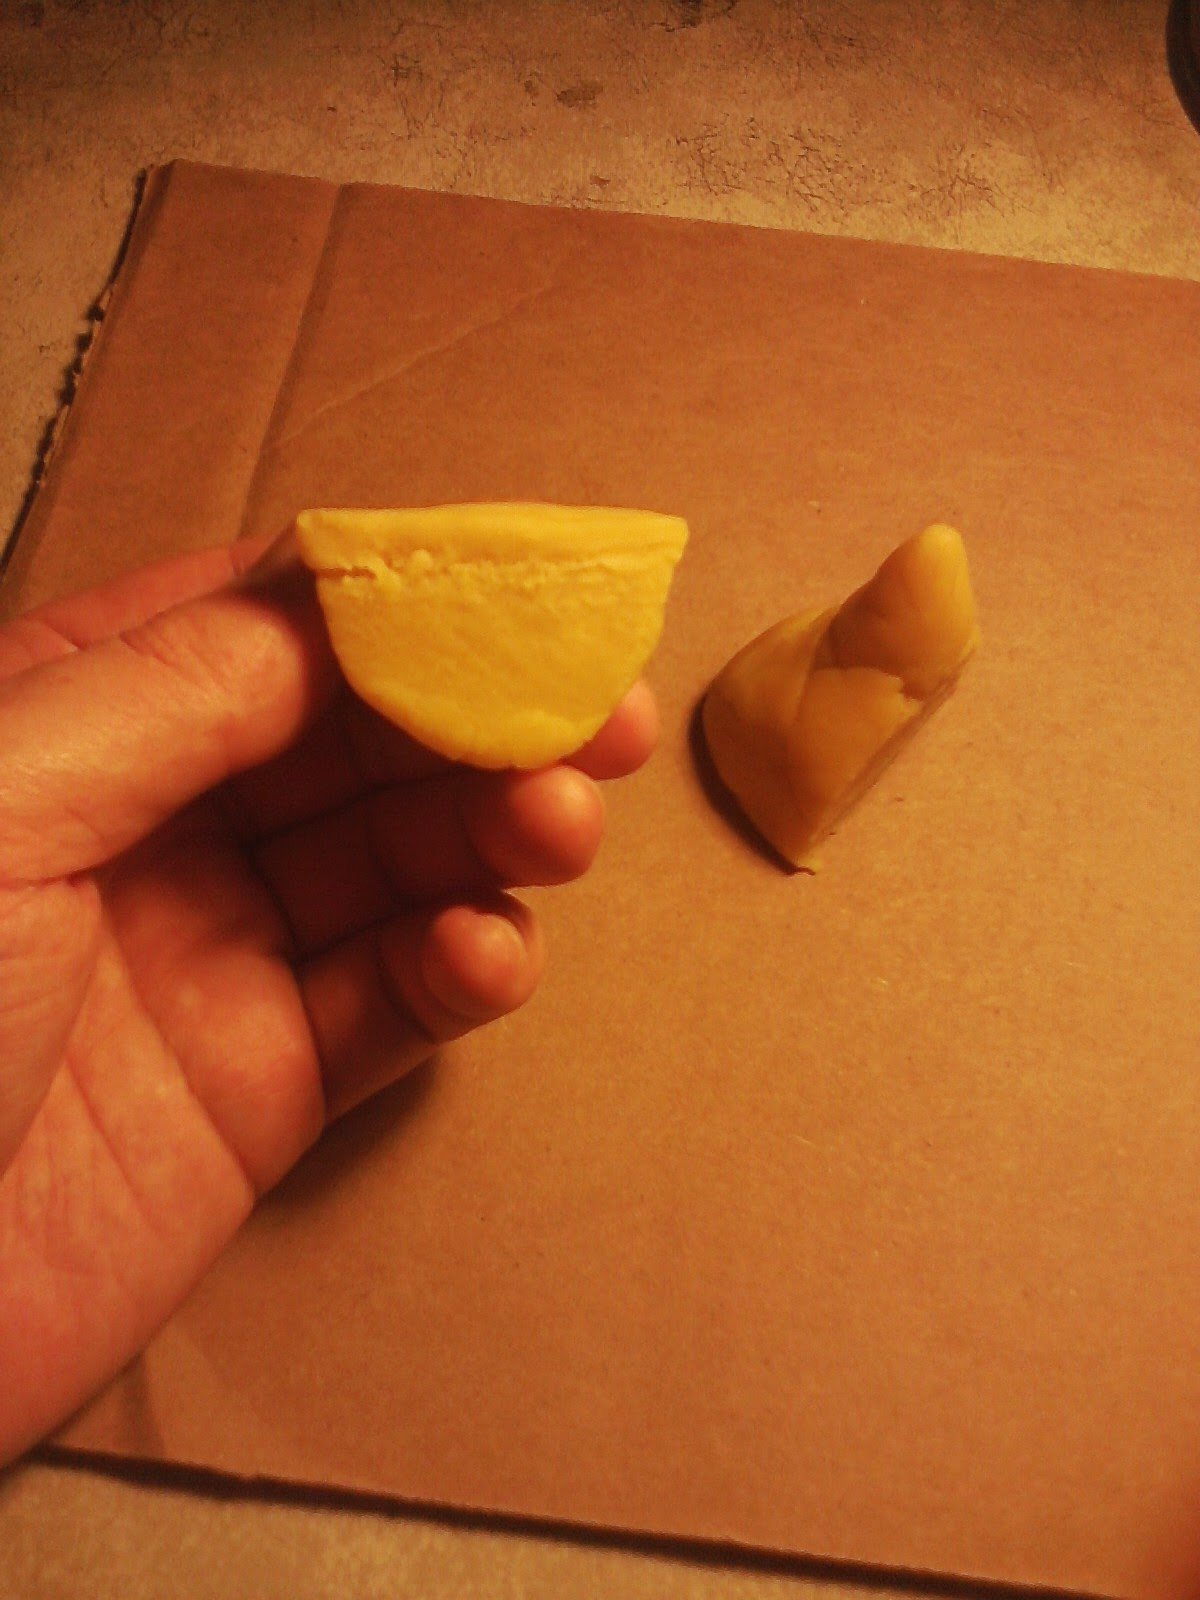 MadMath: Conic Sections in Play-Doh